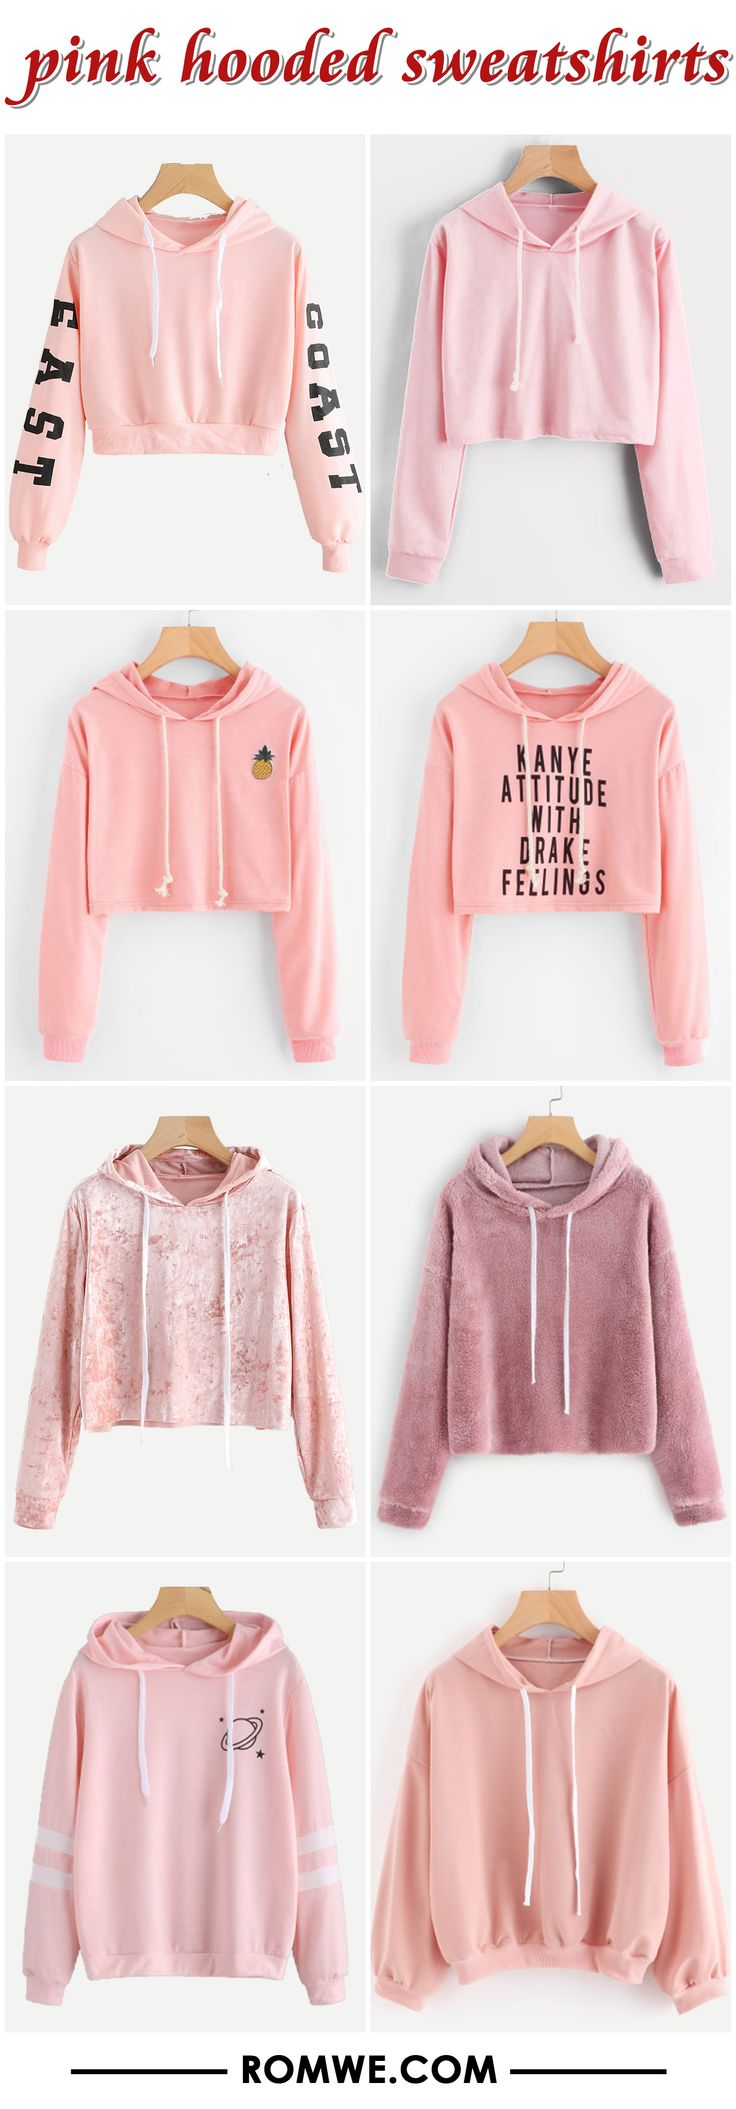 FREE SHIPPING ON ORDERS $59+ - pink hooded sweatshirts from romwe.com